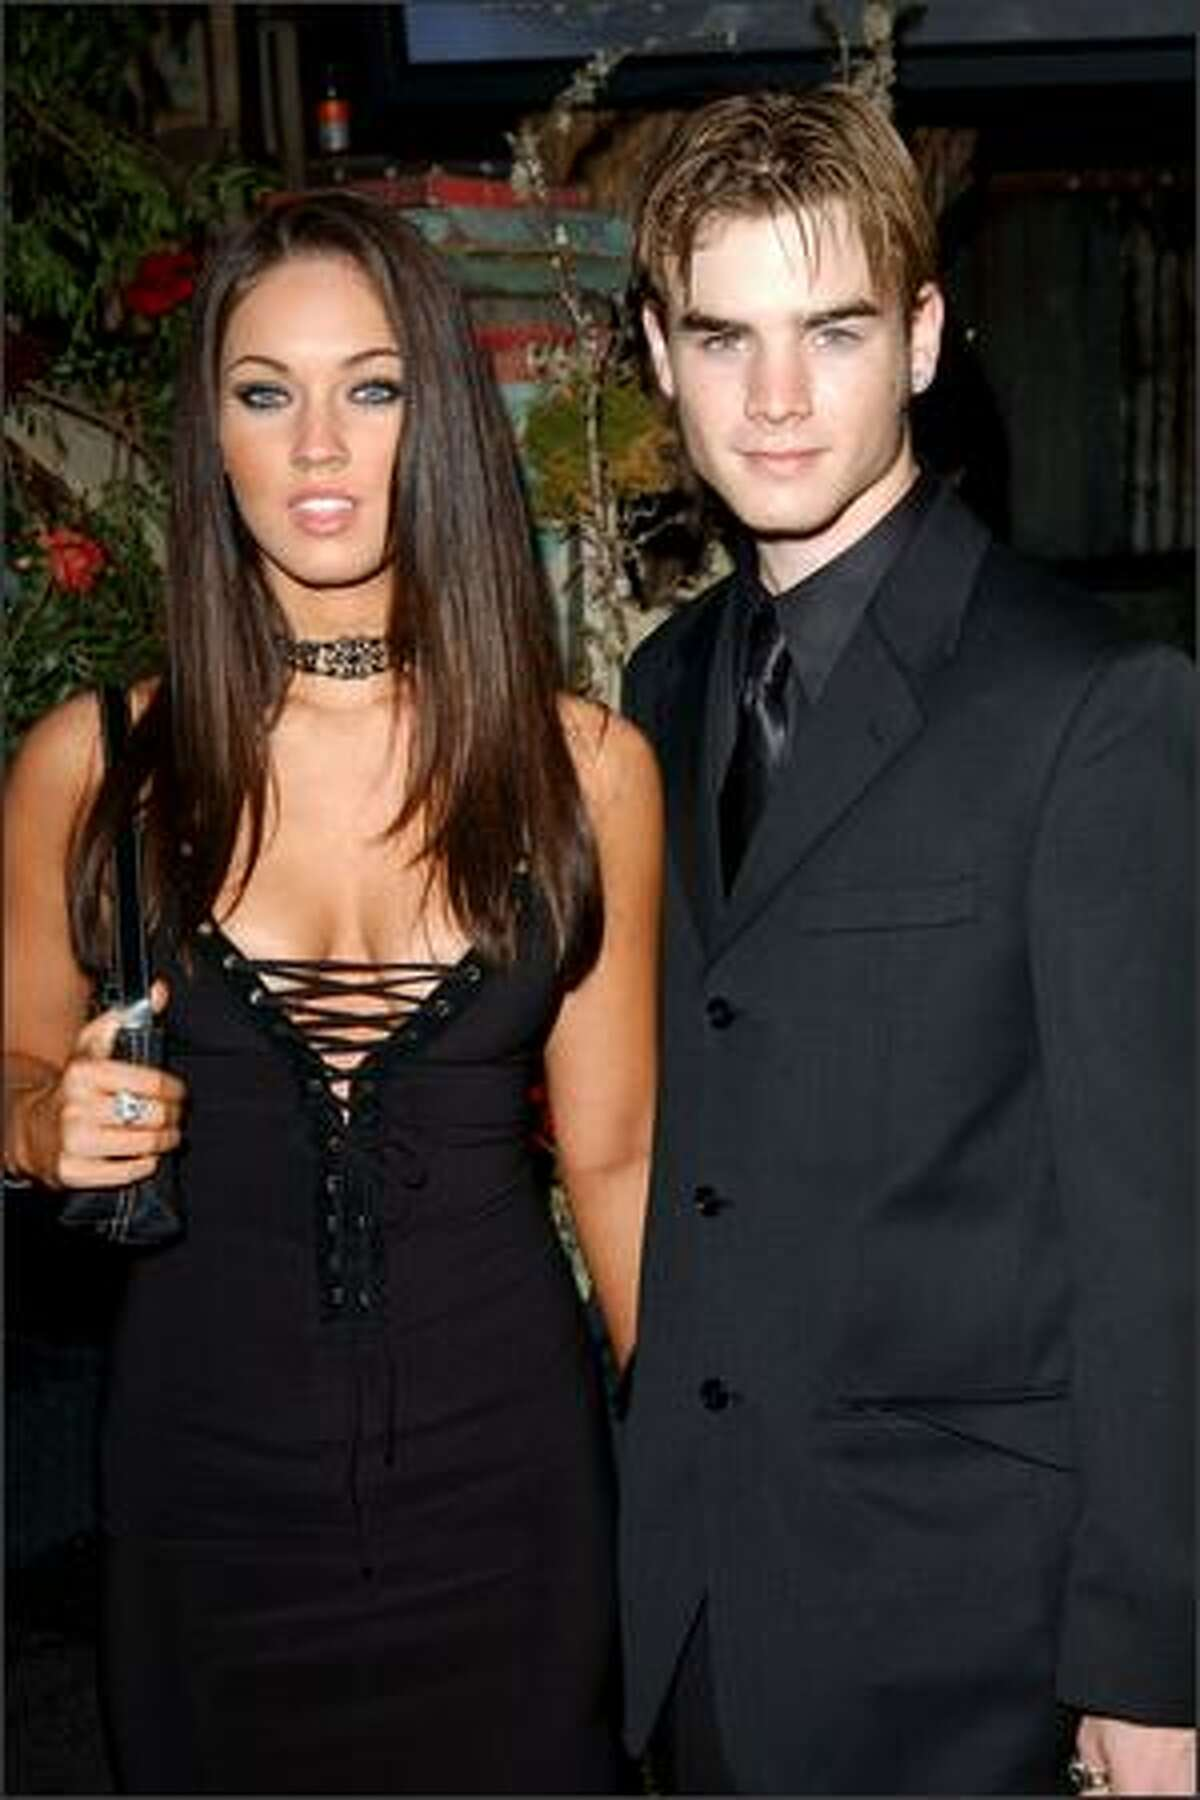 This is the 15th in an occasional series featuring stars and their ever-changing fashion styles. Tennessee-born actress Megan Fox, 22, is seen with her date, actor David Gallagher, in Los Angeles in March 2003. Fox is emblematic of a new generation of Hollywood stars; not yet truly successful, she is unlikely to be seen in a designer gown on the red carpet. Nonetheless, she brings her own youthful style and sexual appeal to numerous public events.